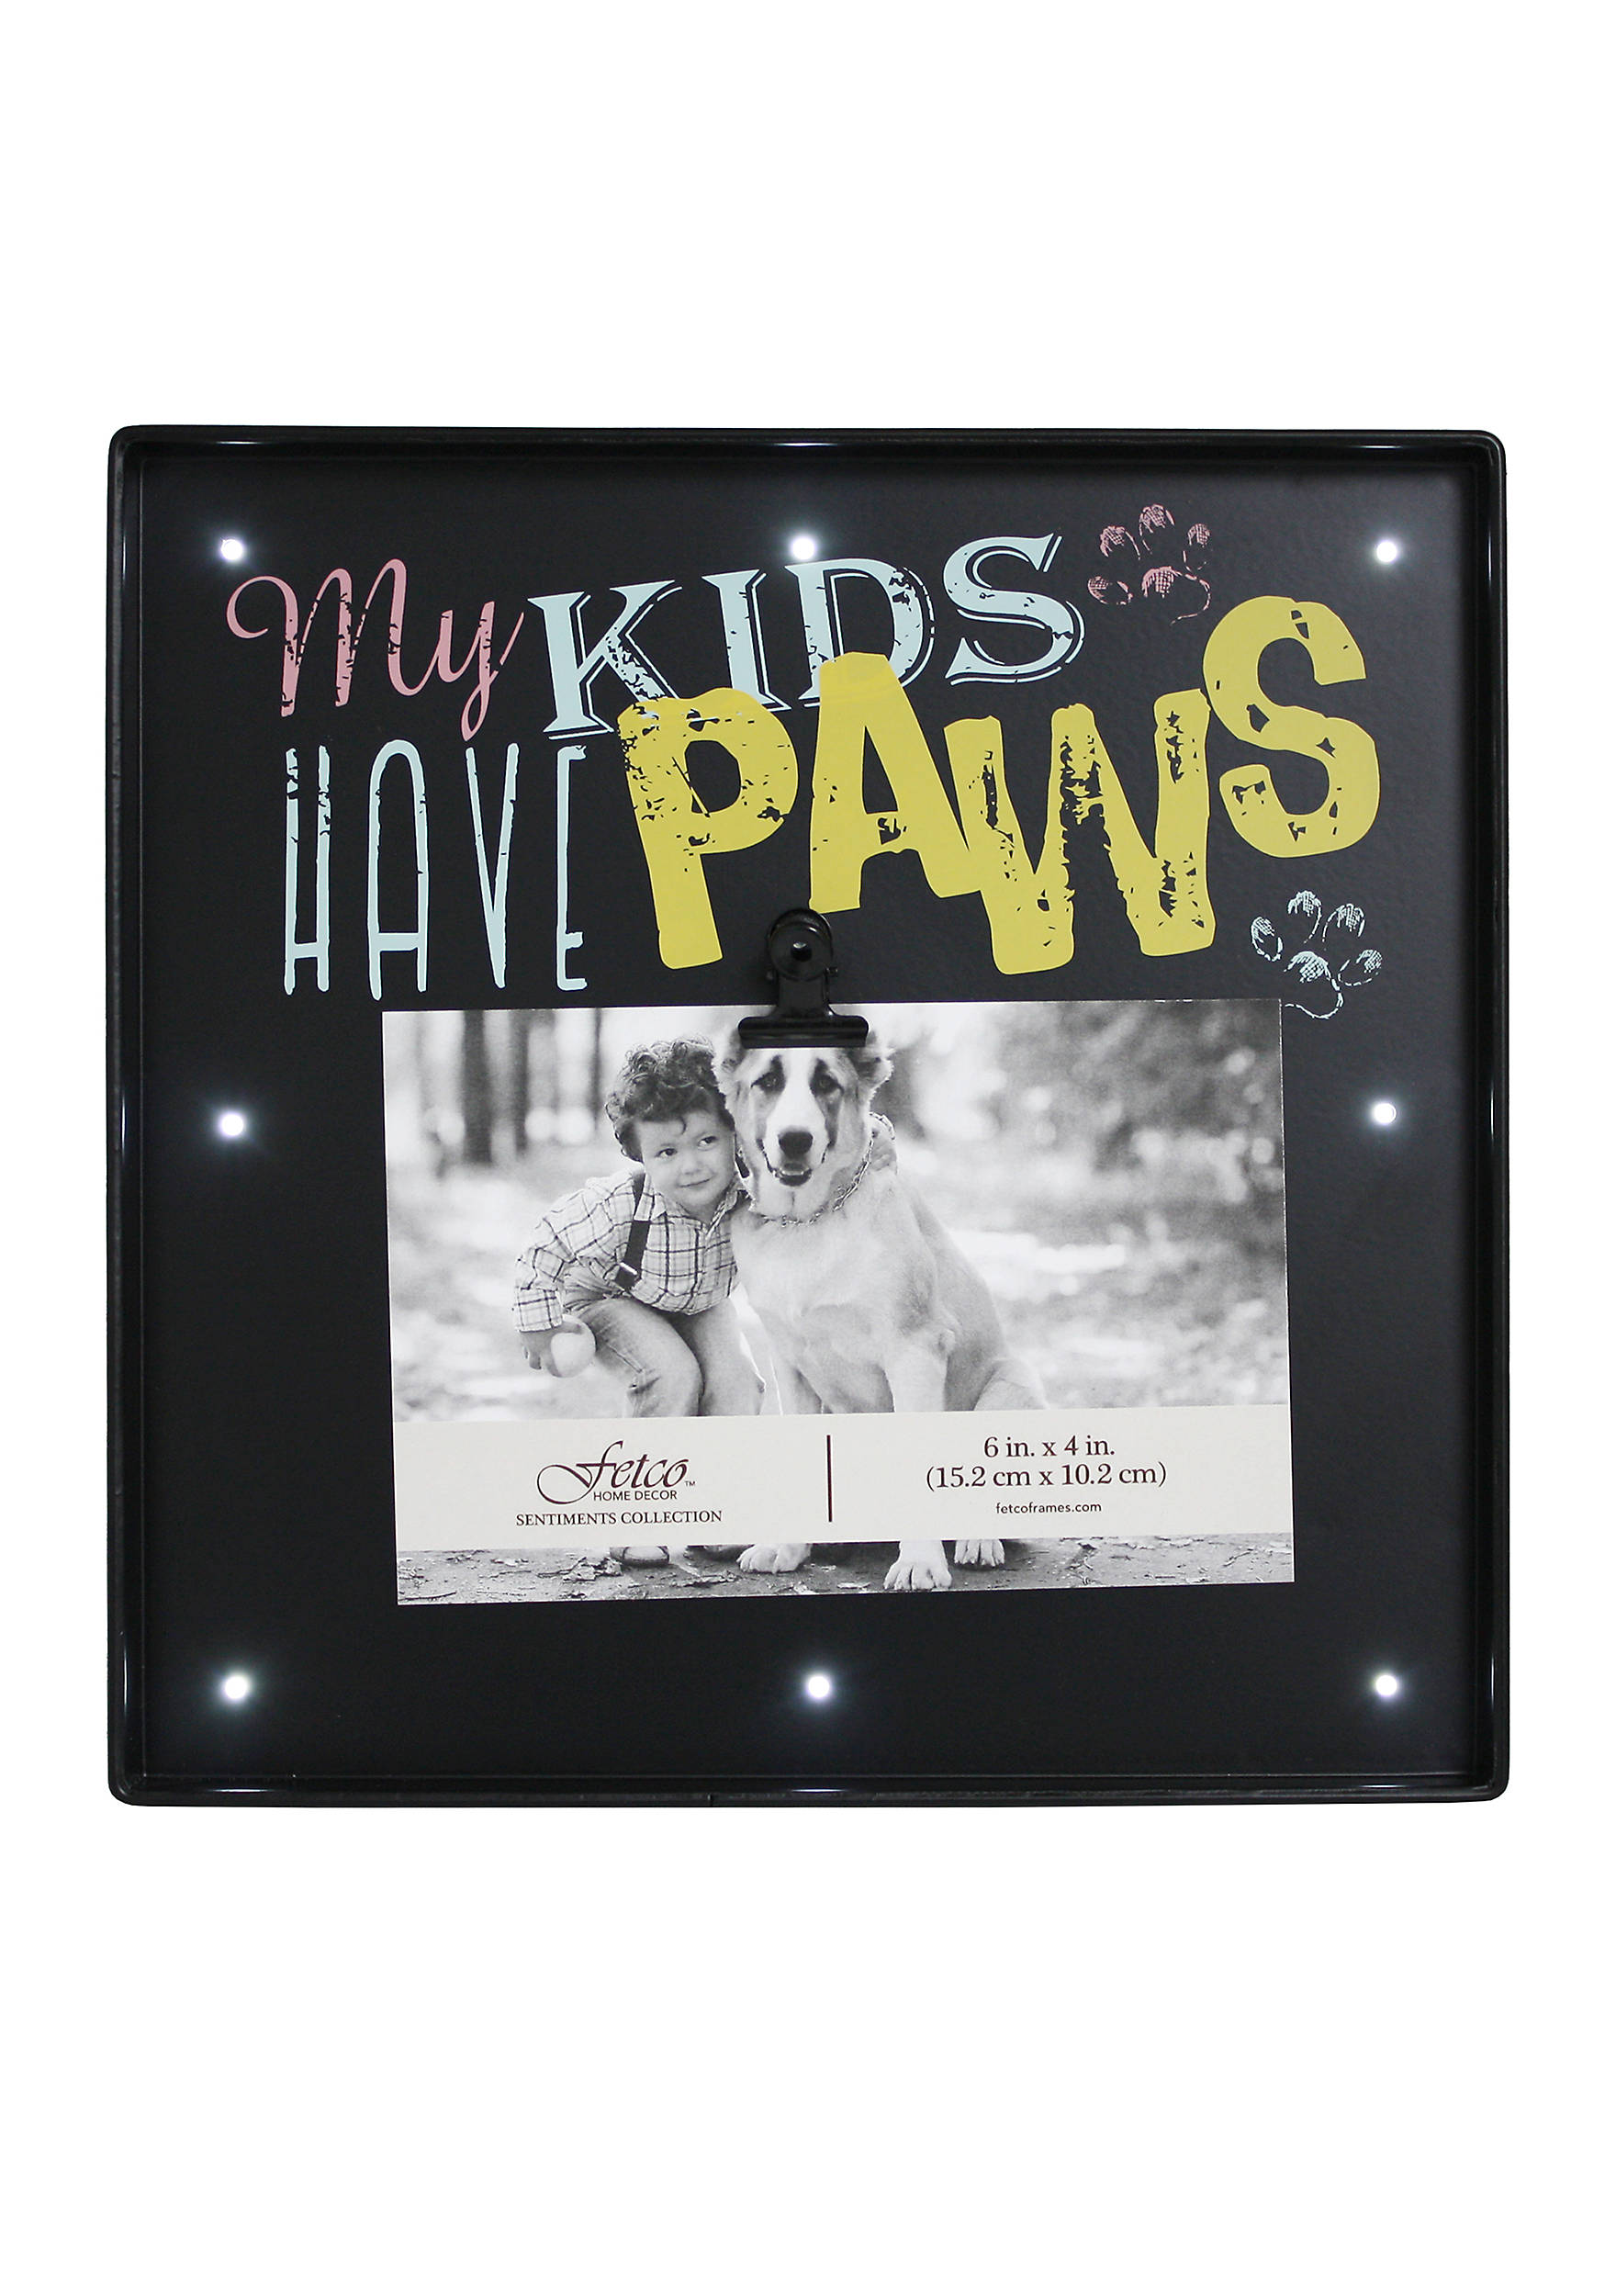 Fetco home dcor my kids have paws 4x6 frame belk images jeuxipadfo Gallery